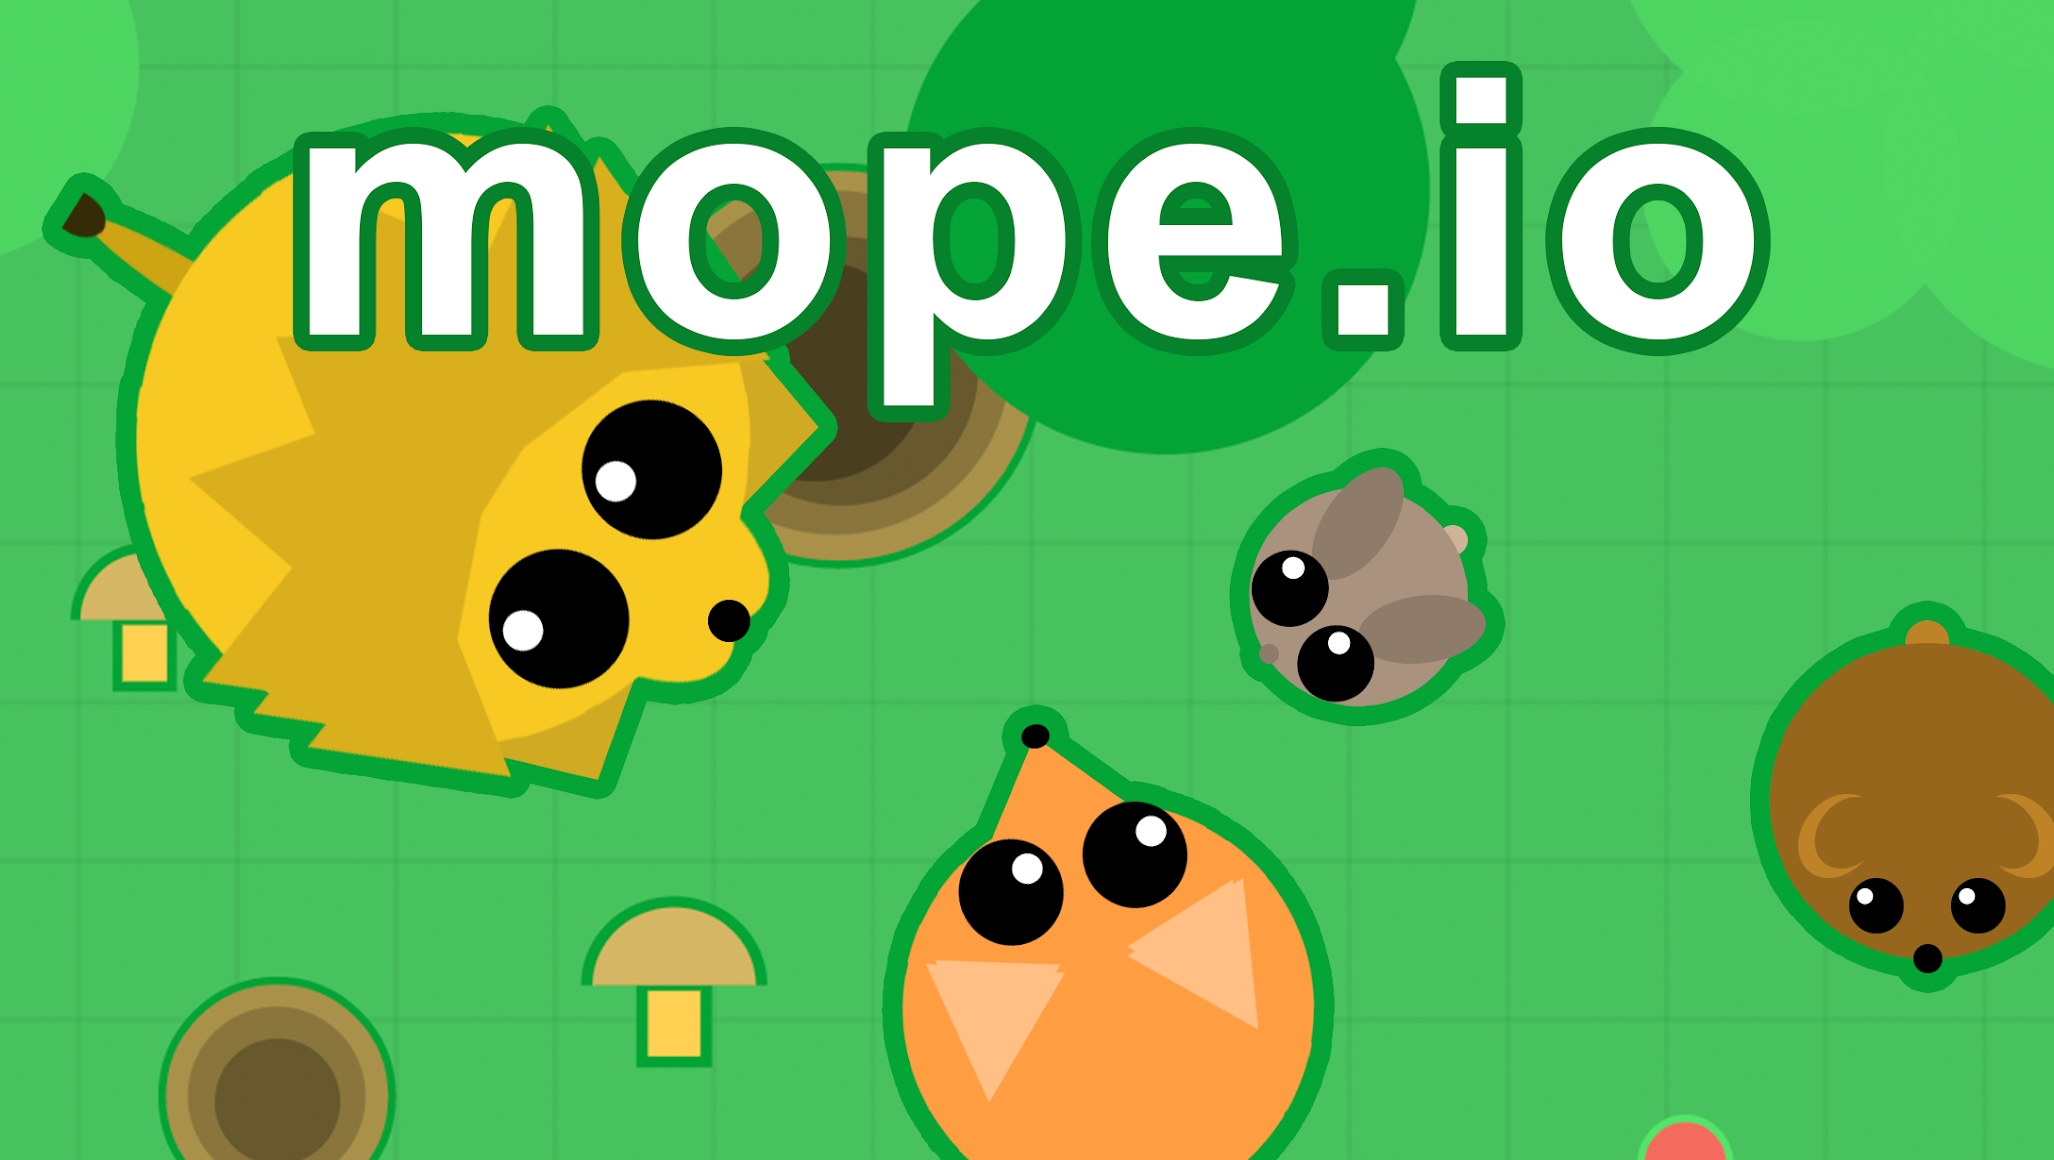 Mope.io - Play Mope.io on Crazy Games